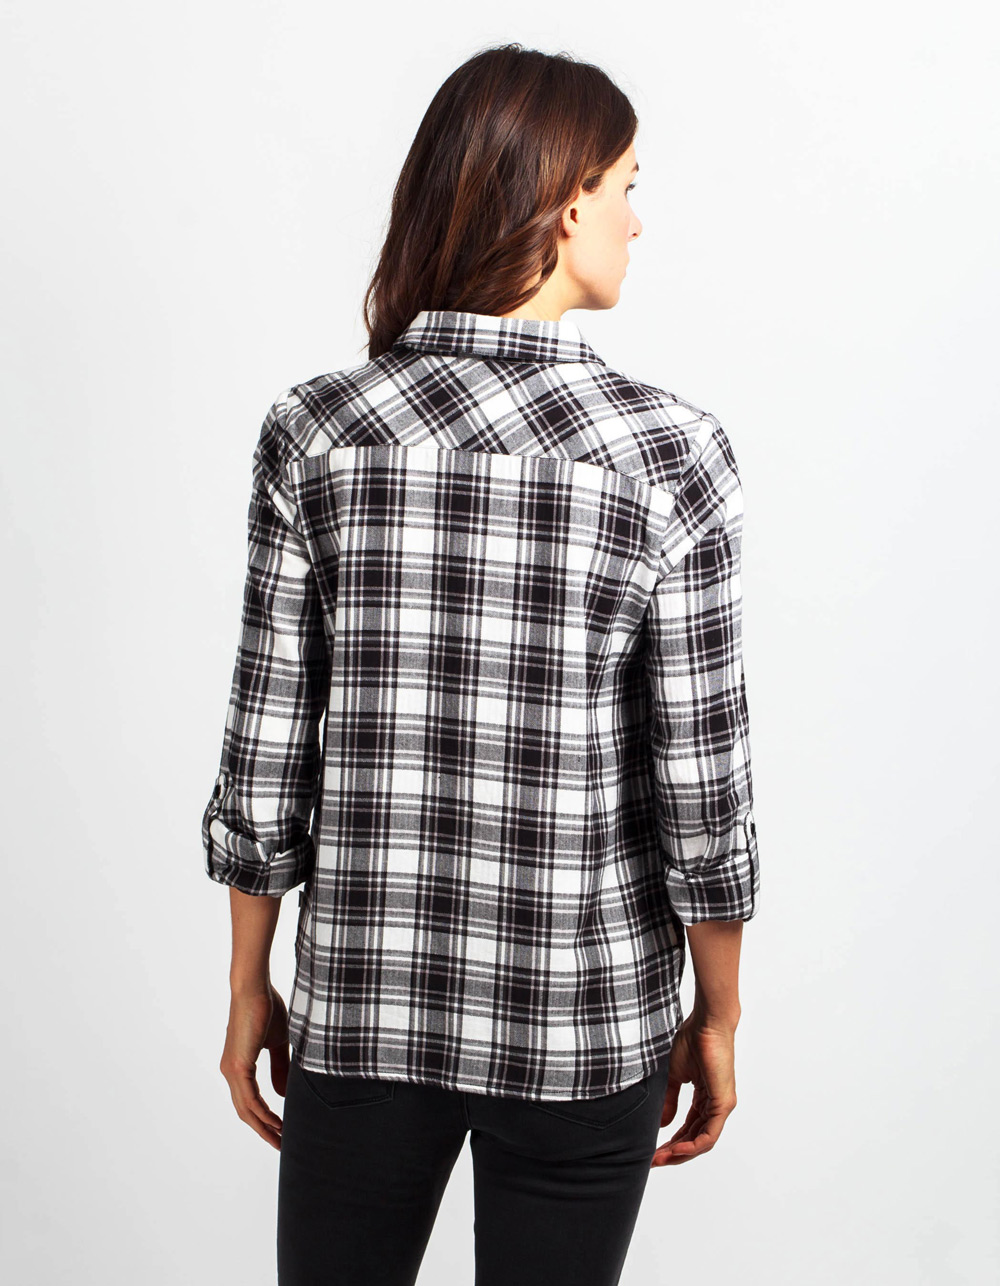 Camisa cuadros - Backside